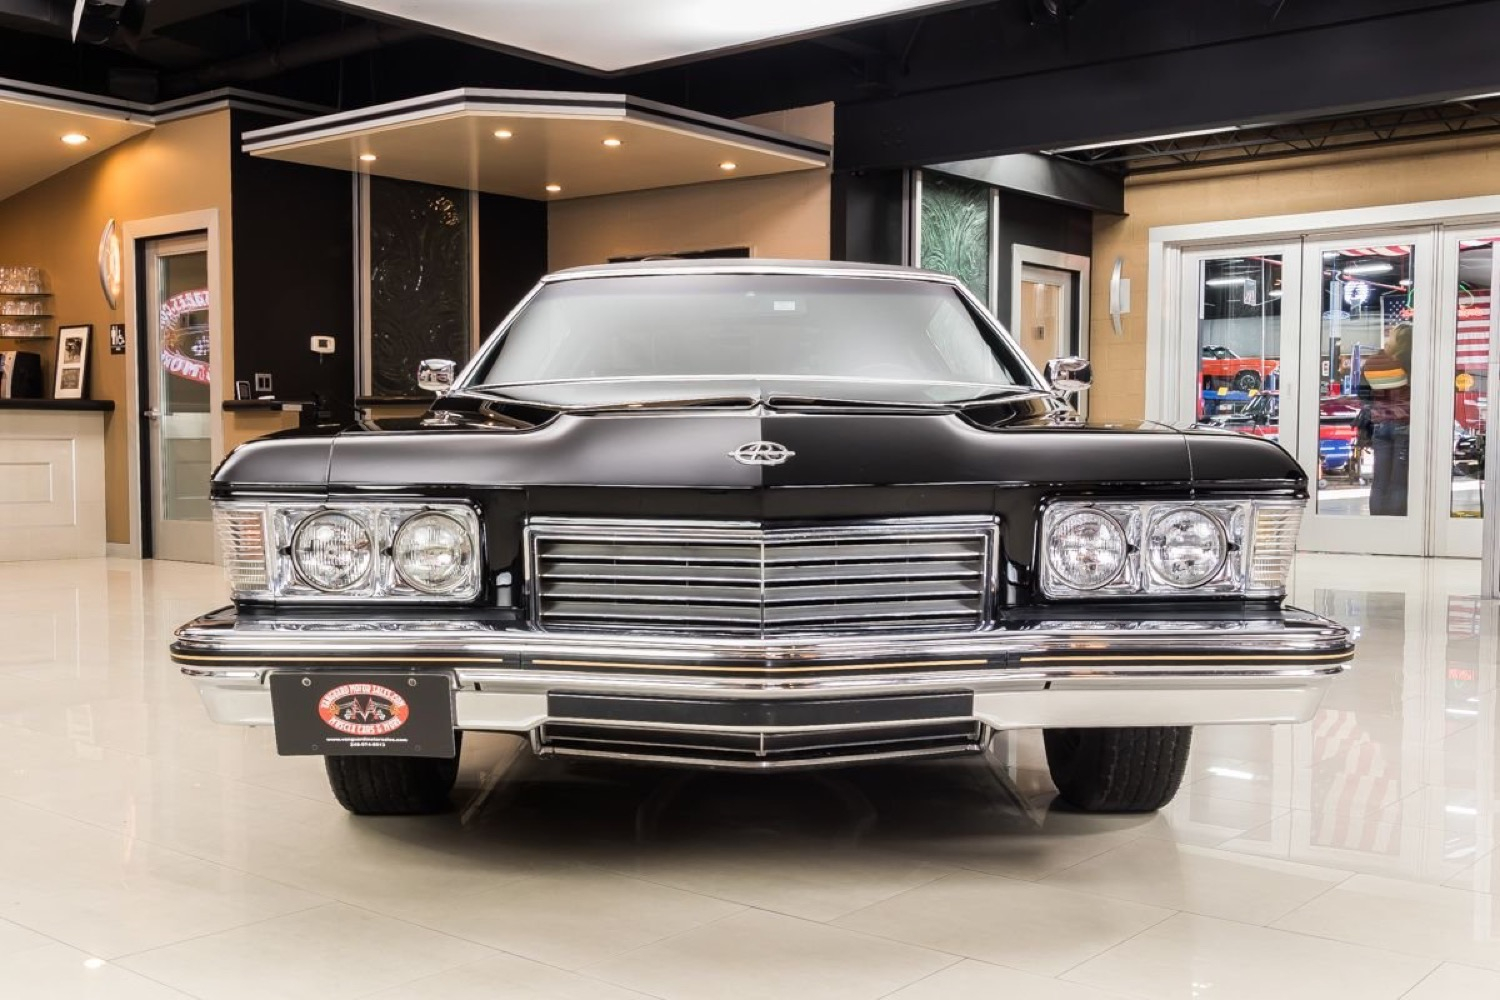 1973 Buick Riviera Boat Tail Up For Sale: Video | Gm Authority New 2022 Buick Riviera Pictures, Grill, Models